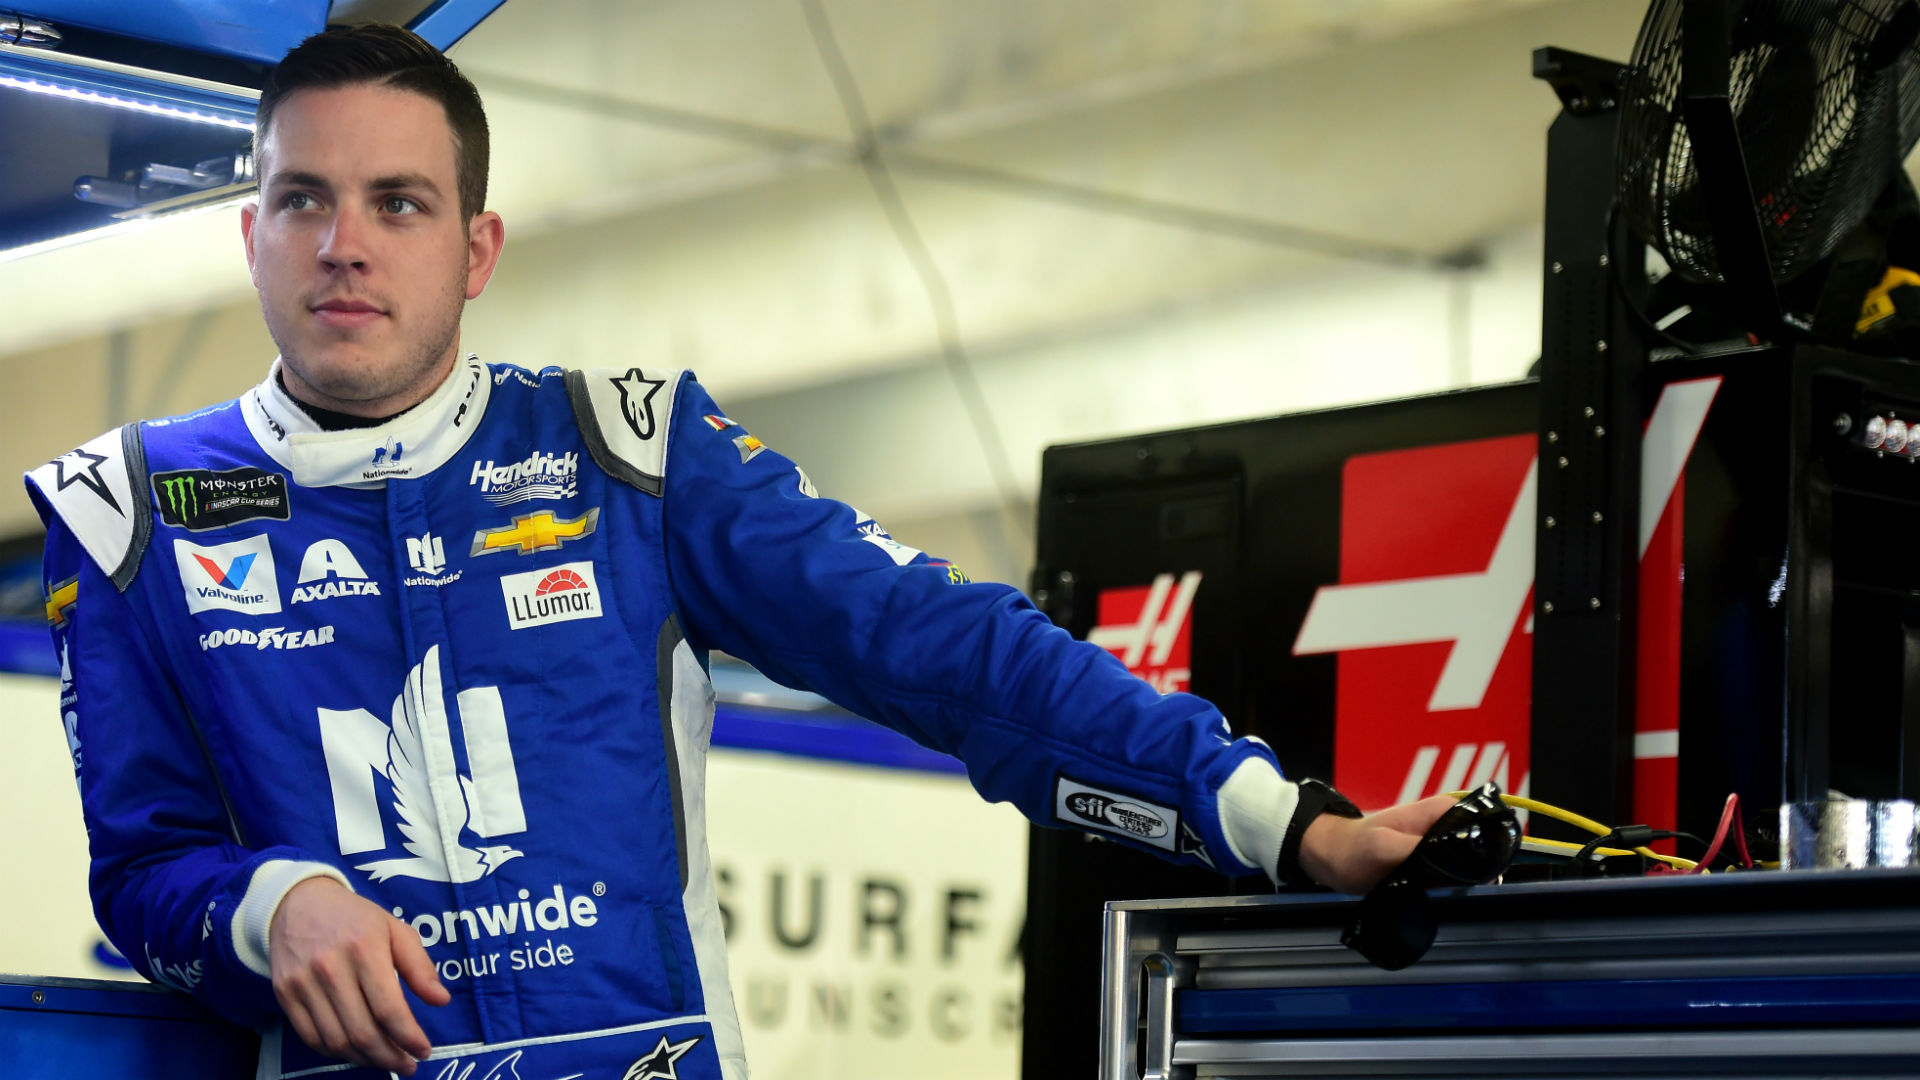 Alex Bowman sounds off on Joey Logano: 'He'll get his for sure'